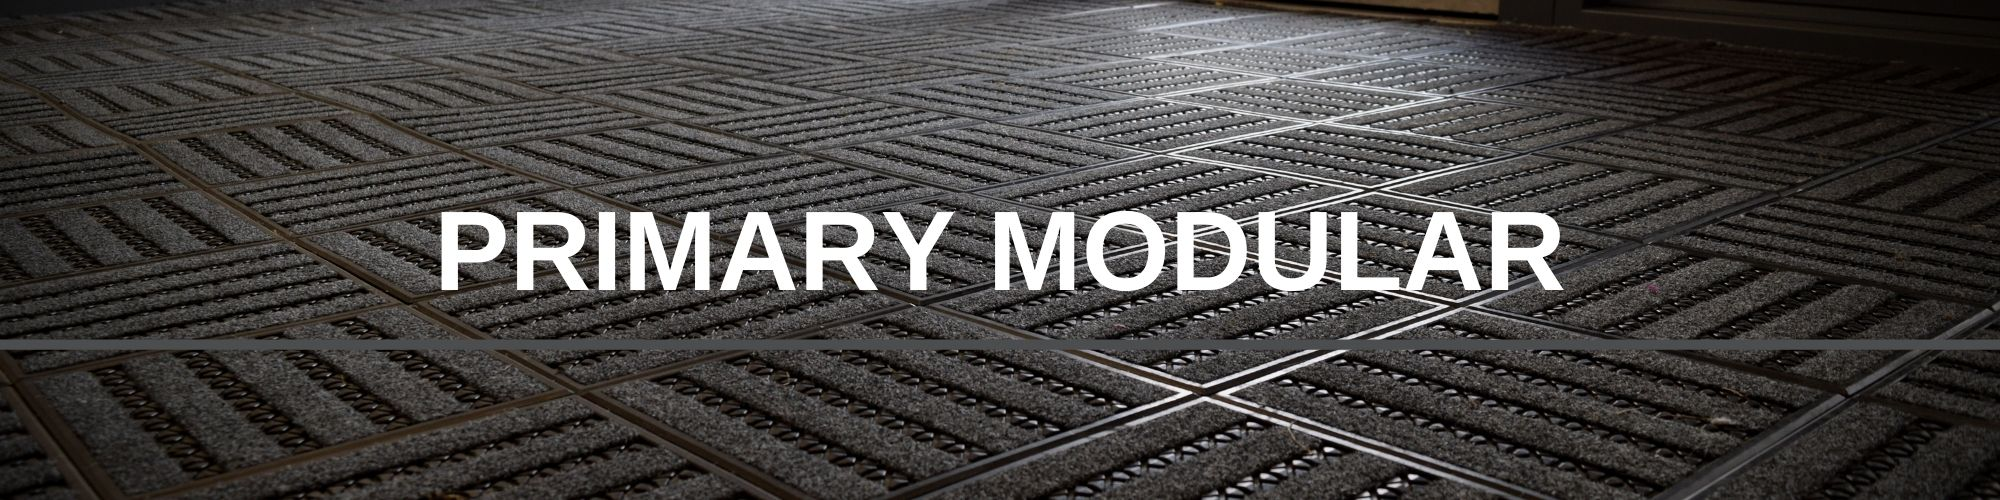 Primary Modular | Mat.Works Entrance Solutions | Entrance Matting